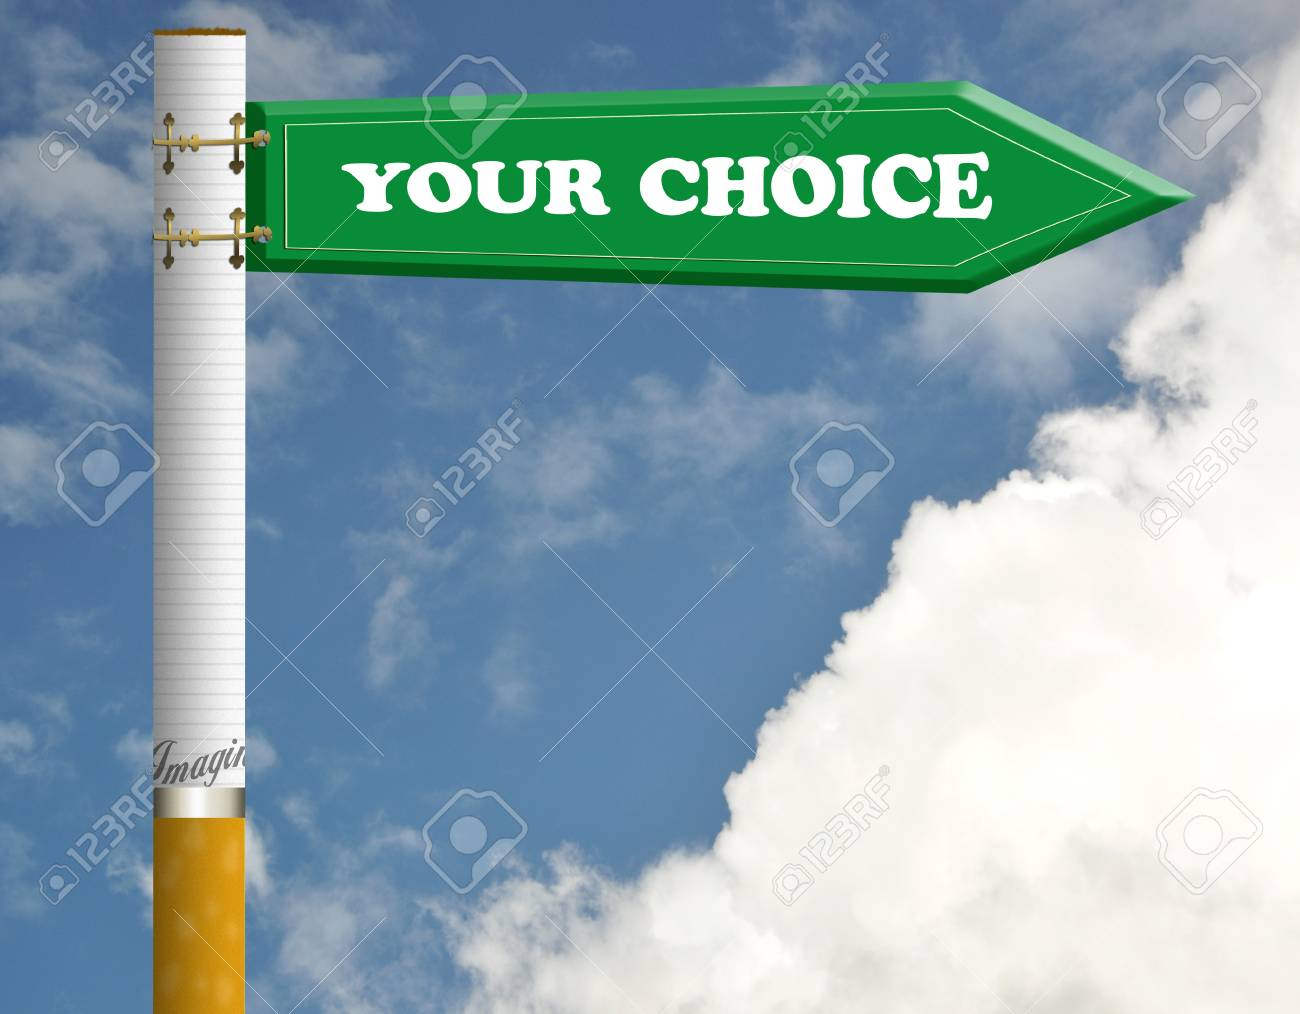 Your choice cigarette road sign Stock Photo - 9652649